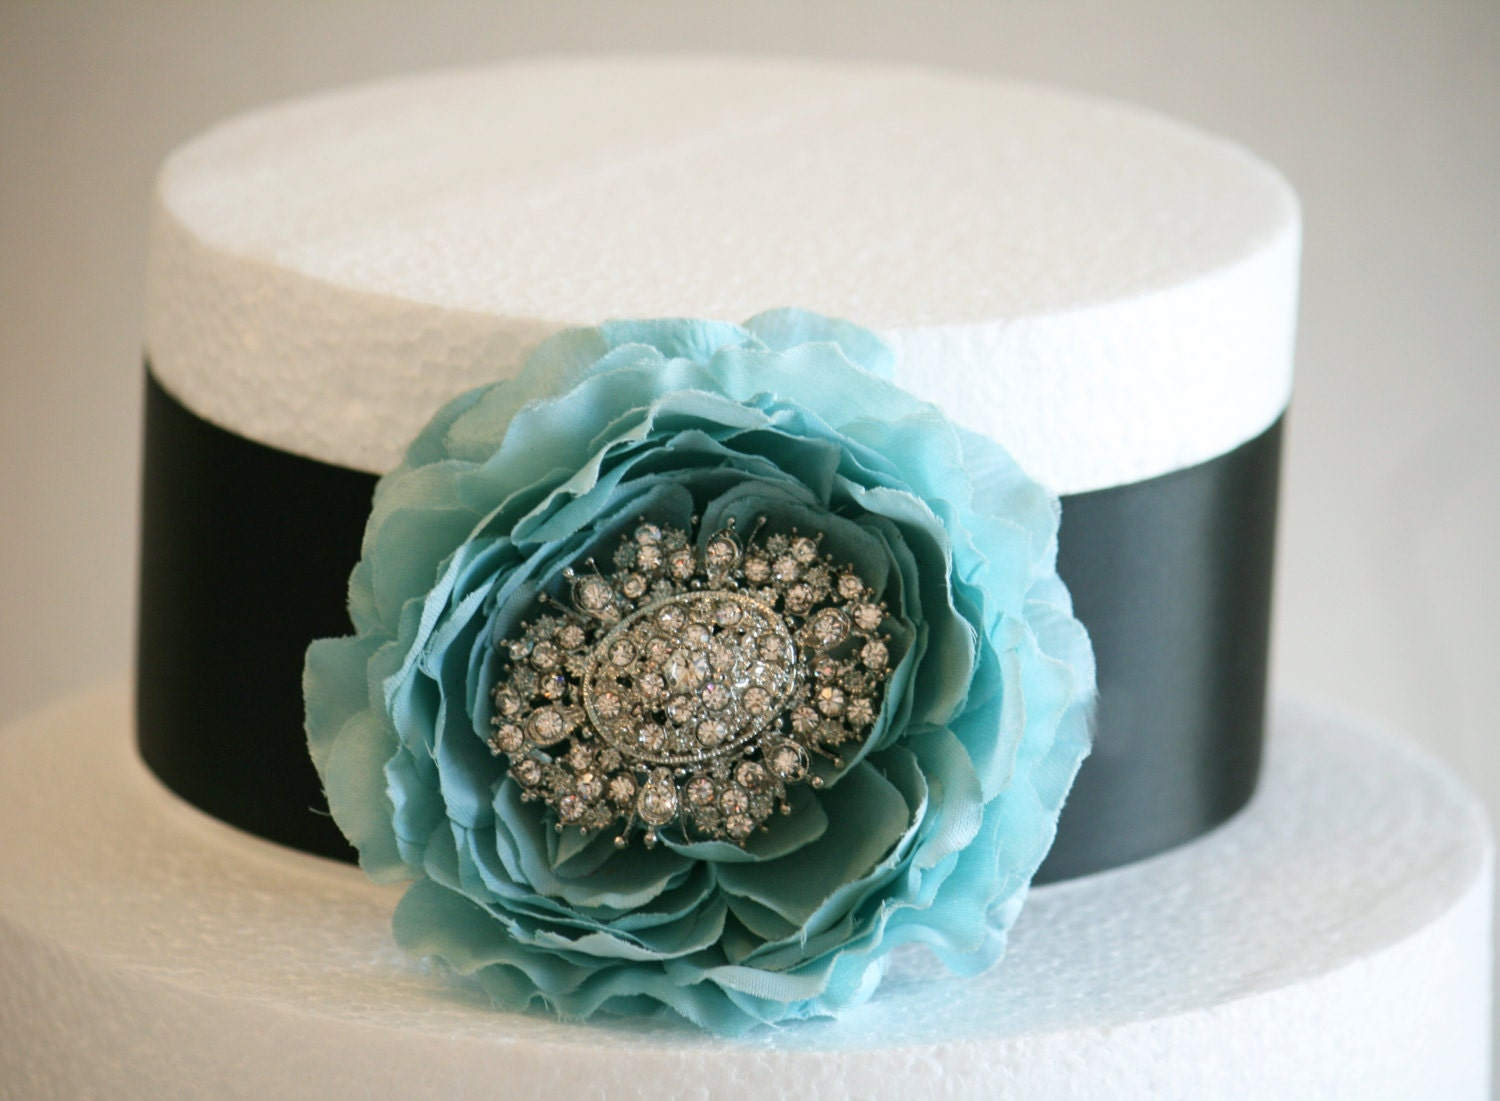 Tiffany Blue and Black Cake Decorations Tiffany Blue by